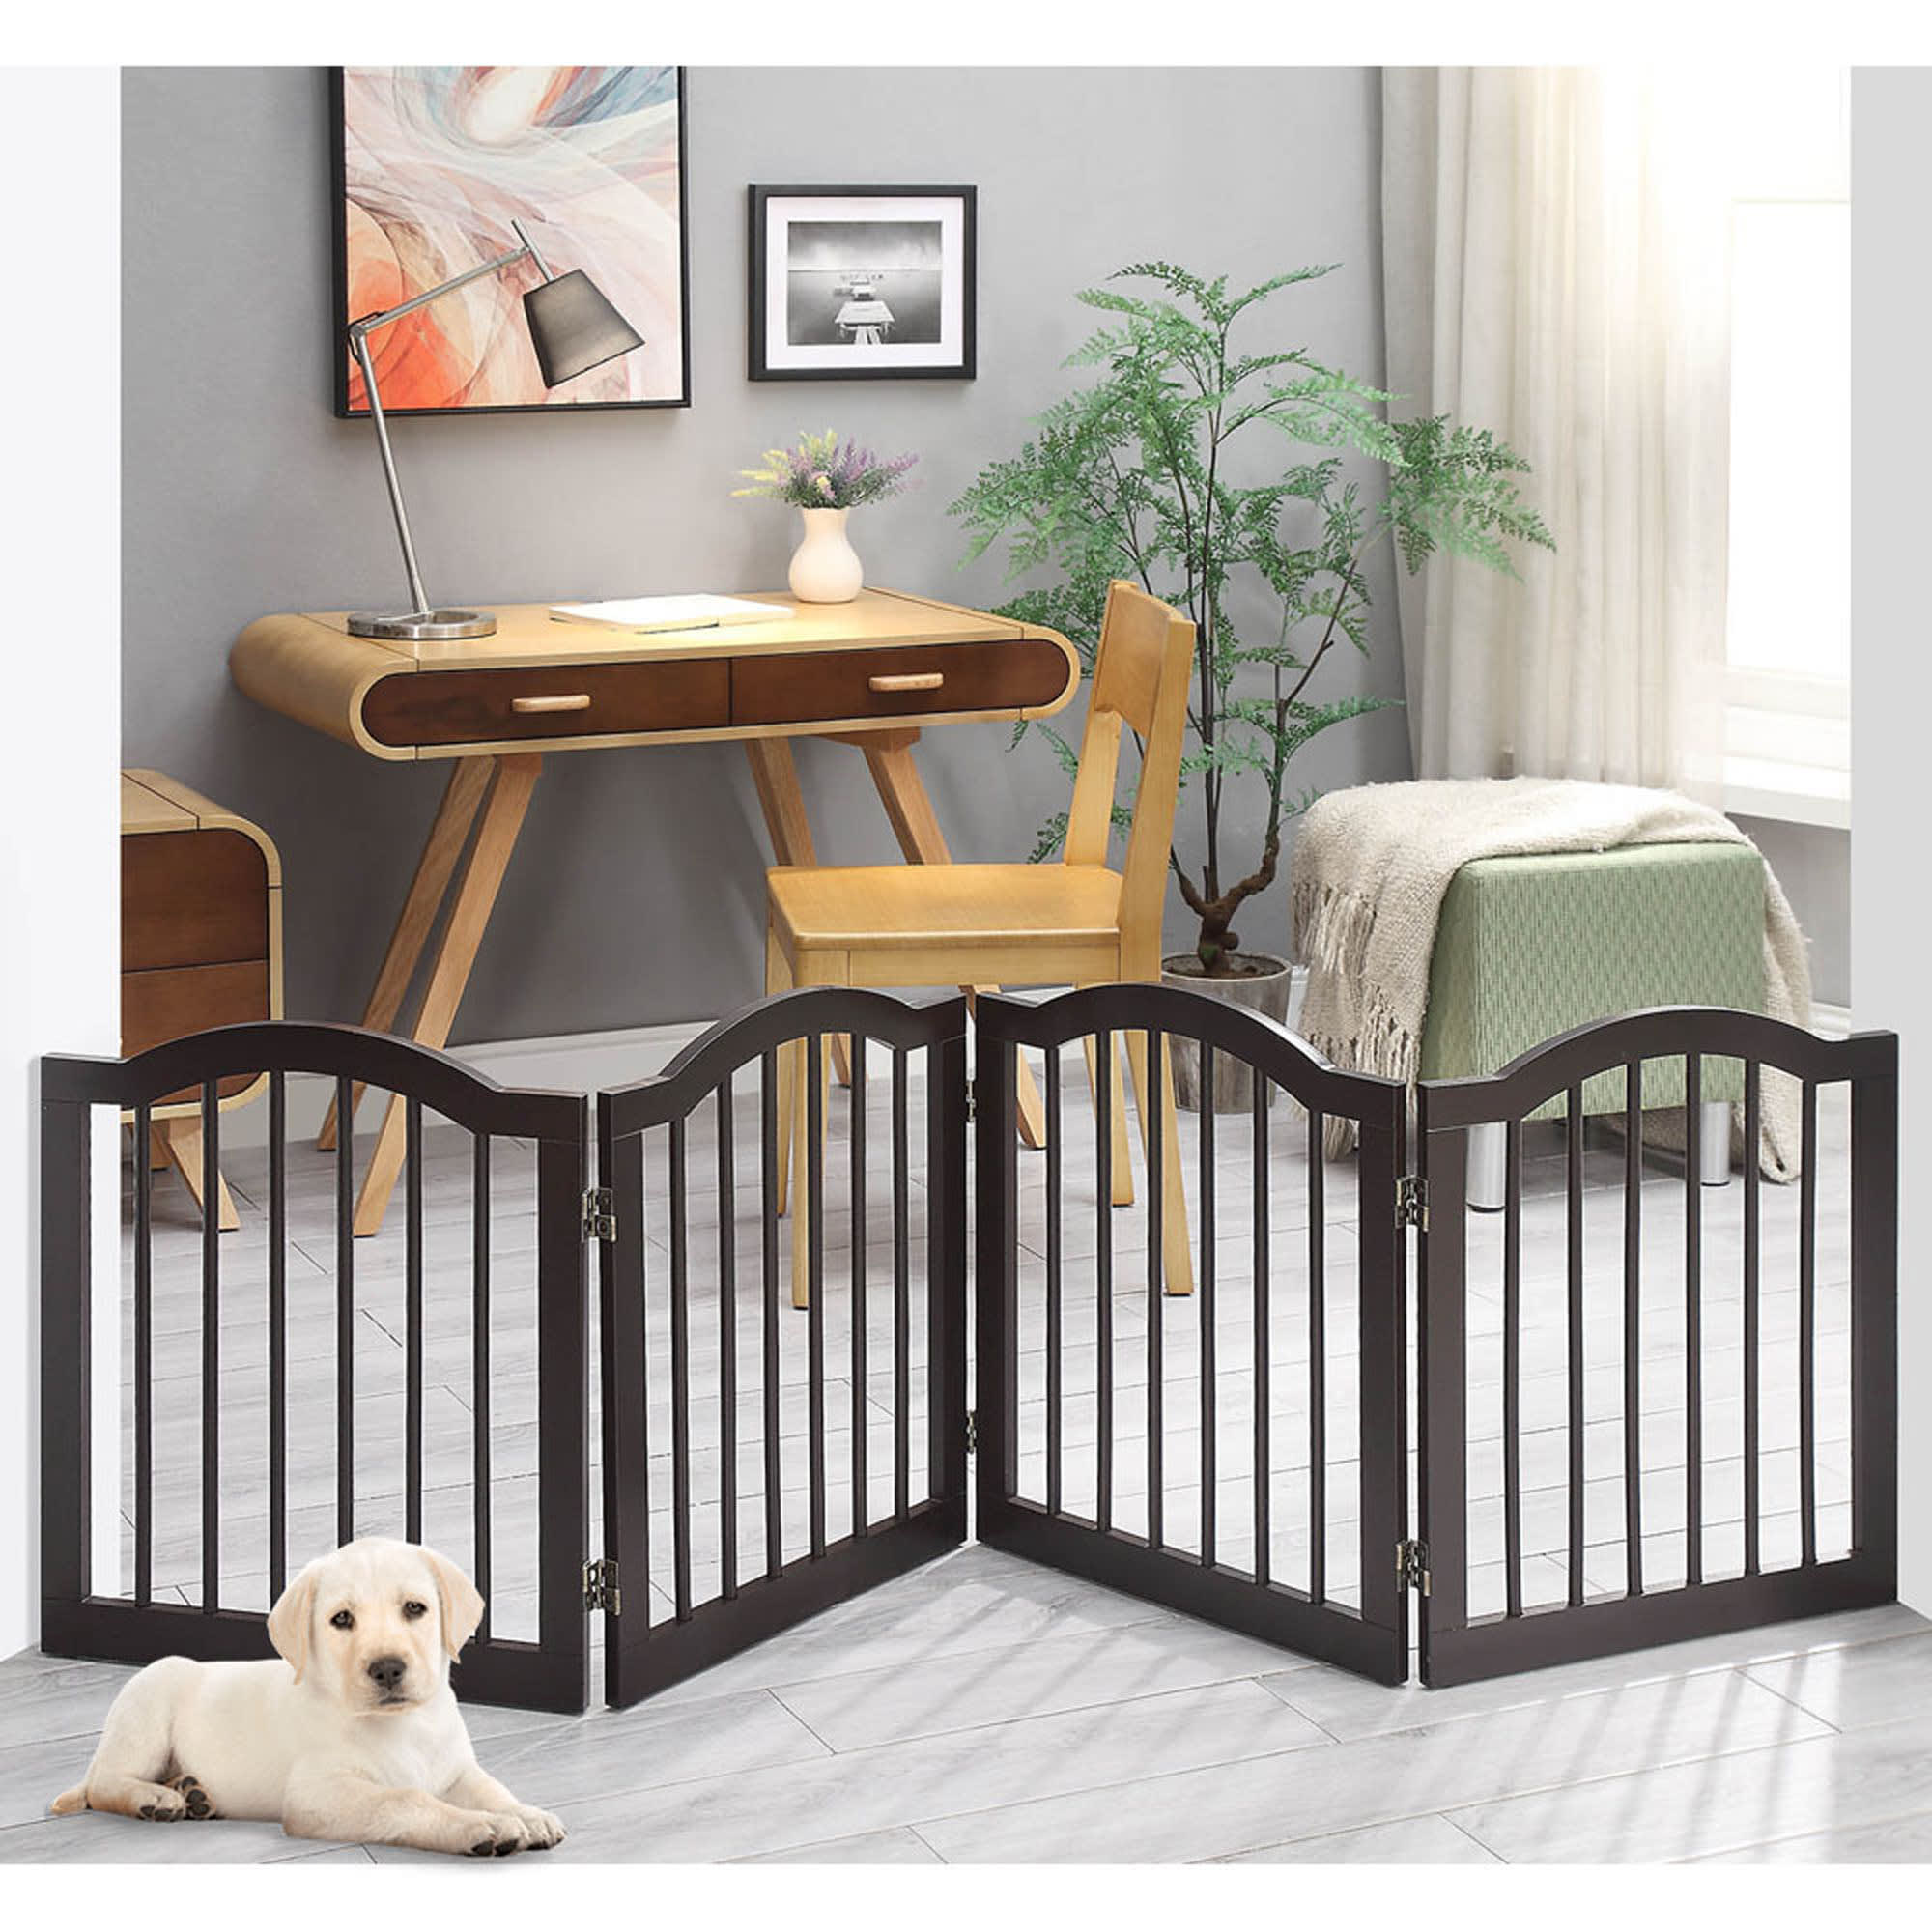 "UniPaws Arched Top 4 Panel Dog Gate Espresso Freestanding, 20""-80"" W X 24"" H, Medium, Brown"